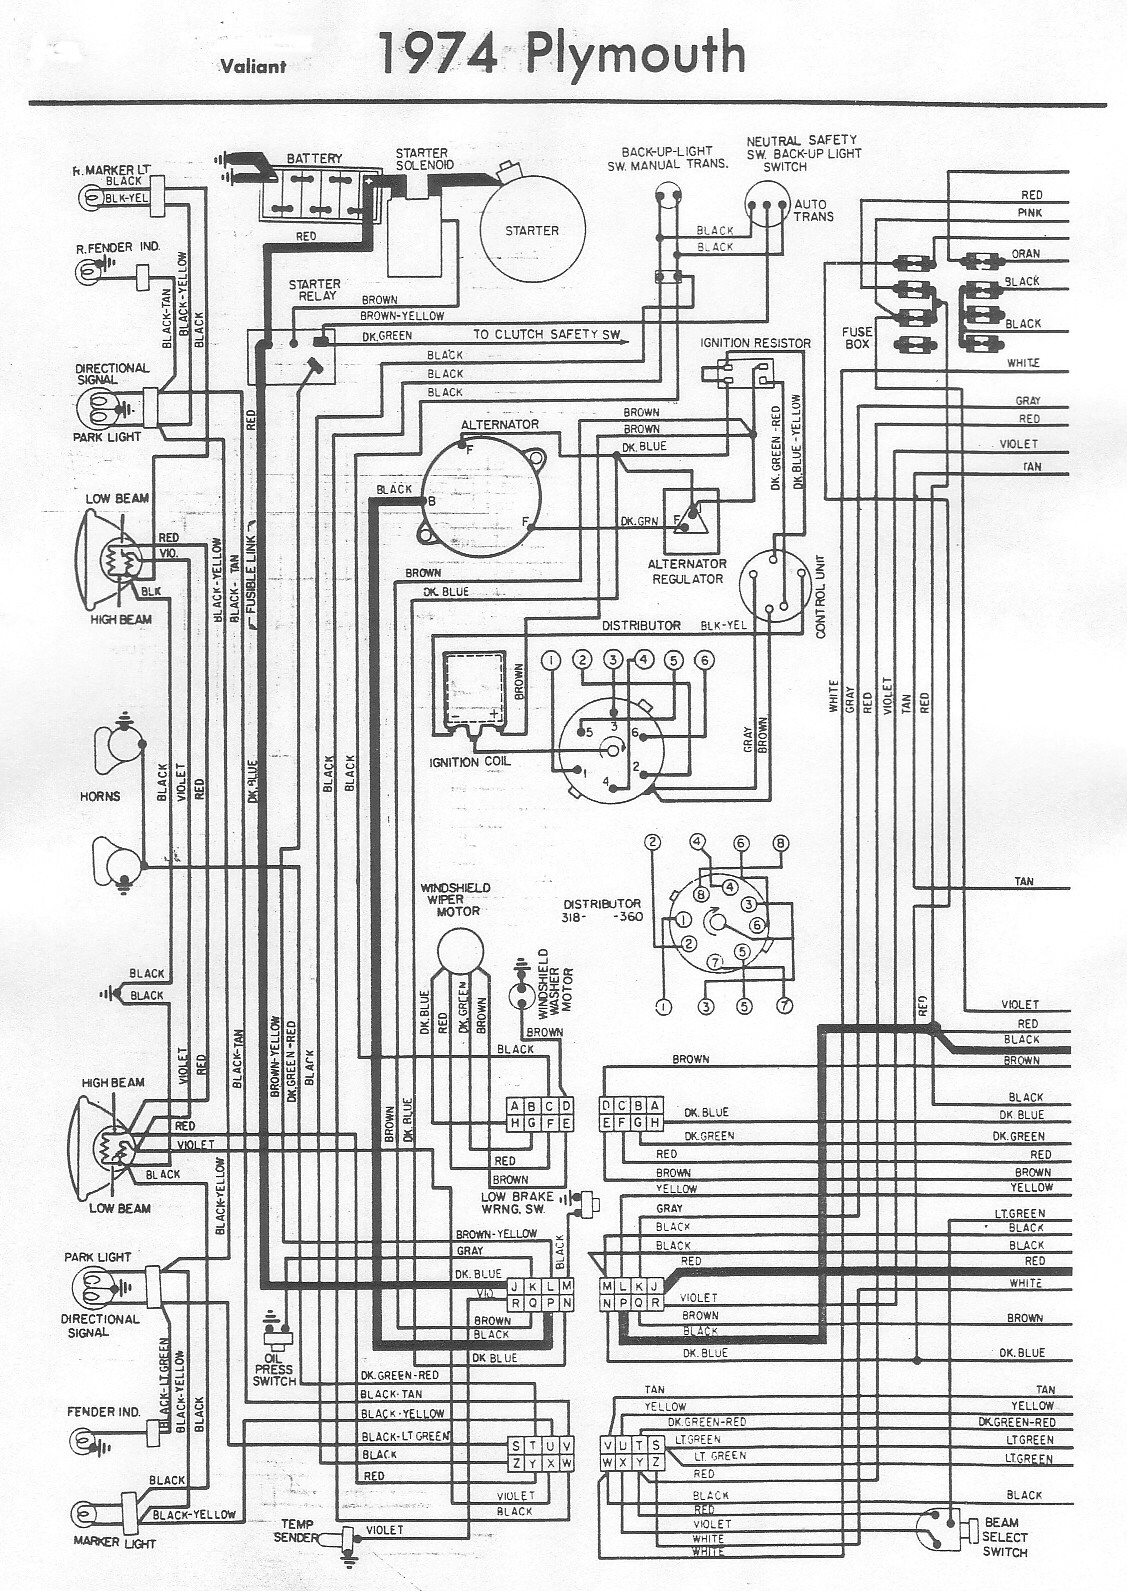 1974 dodge charger wiring - wiring diagrams fat-stamp -  fat-stamp.mumblestudio.it  mumblestudio.it